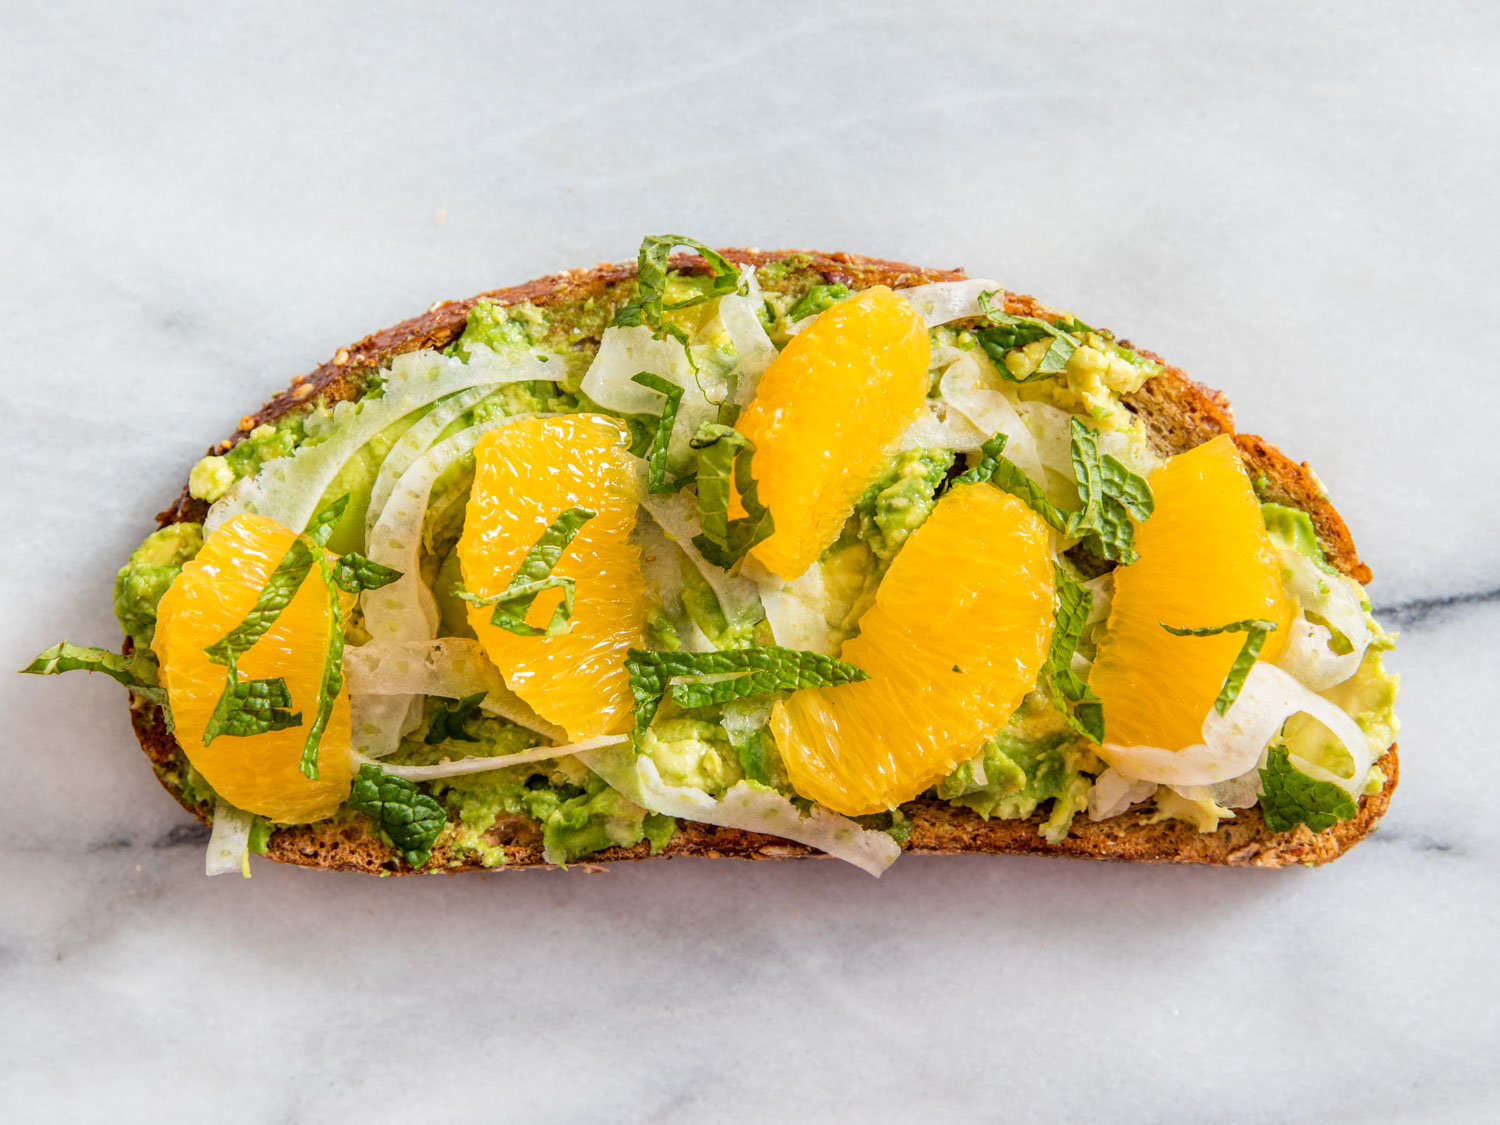 Avocado Toast With Citrus Suprèmes and Slivered Fennel Recipe